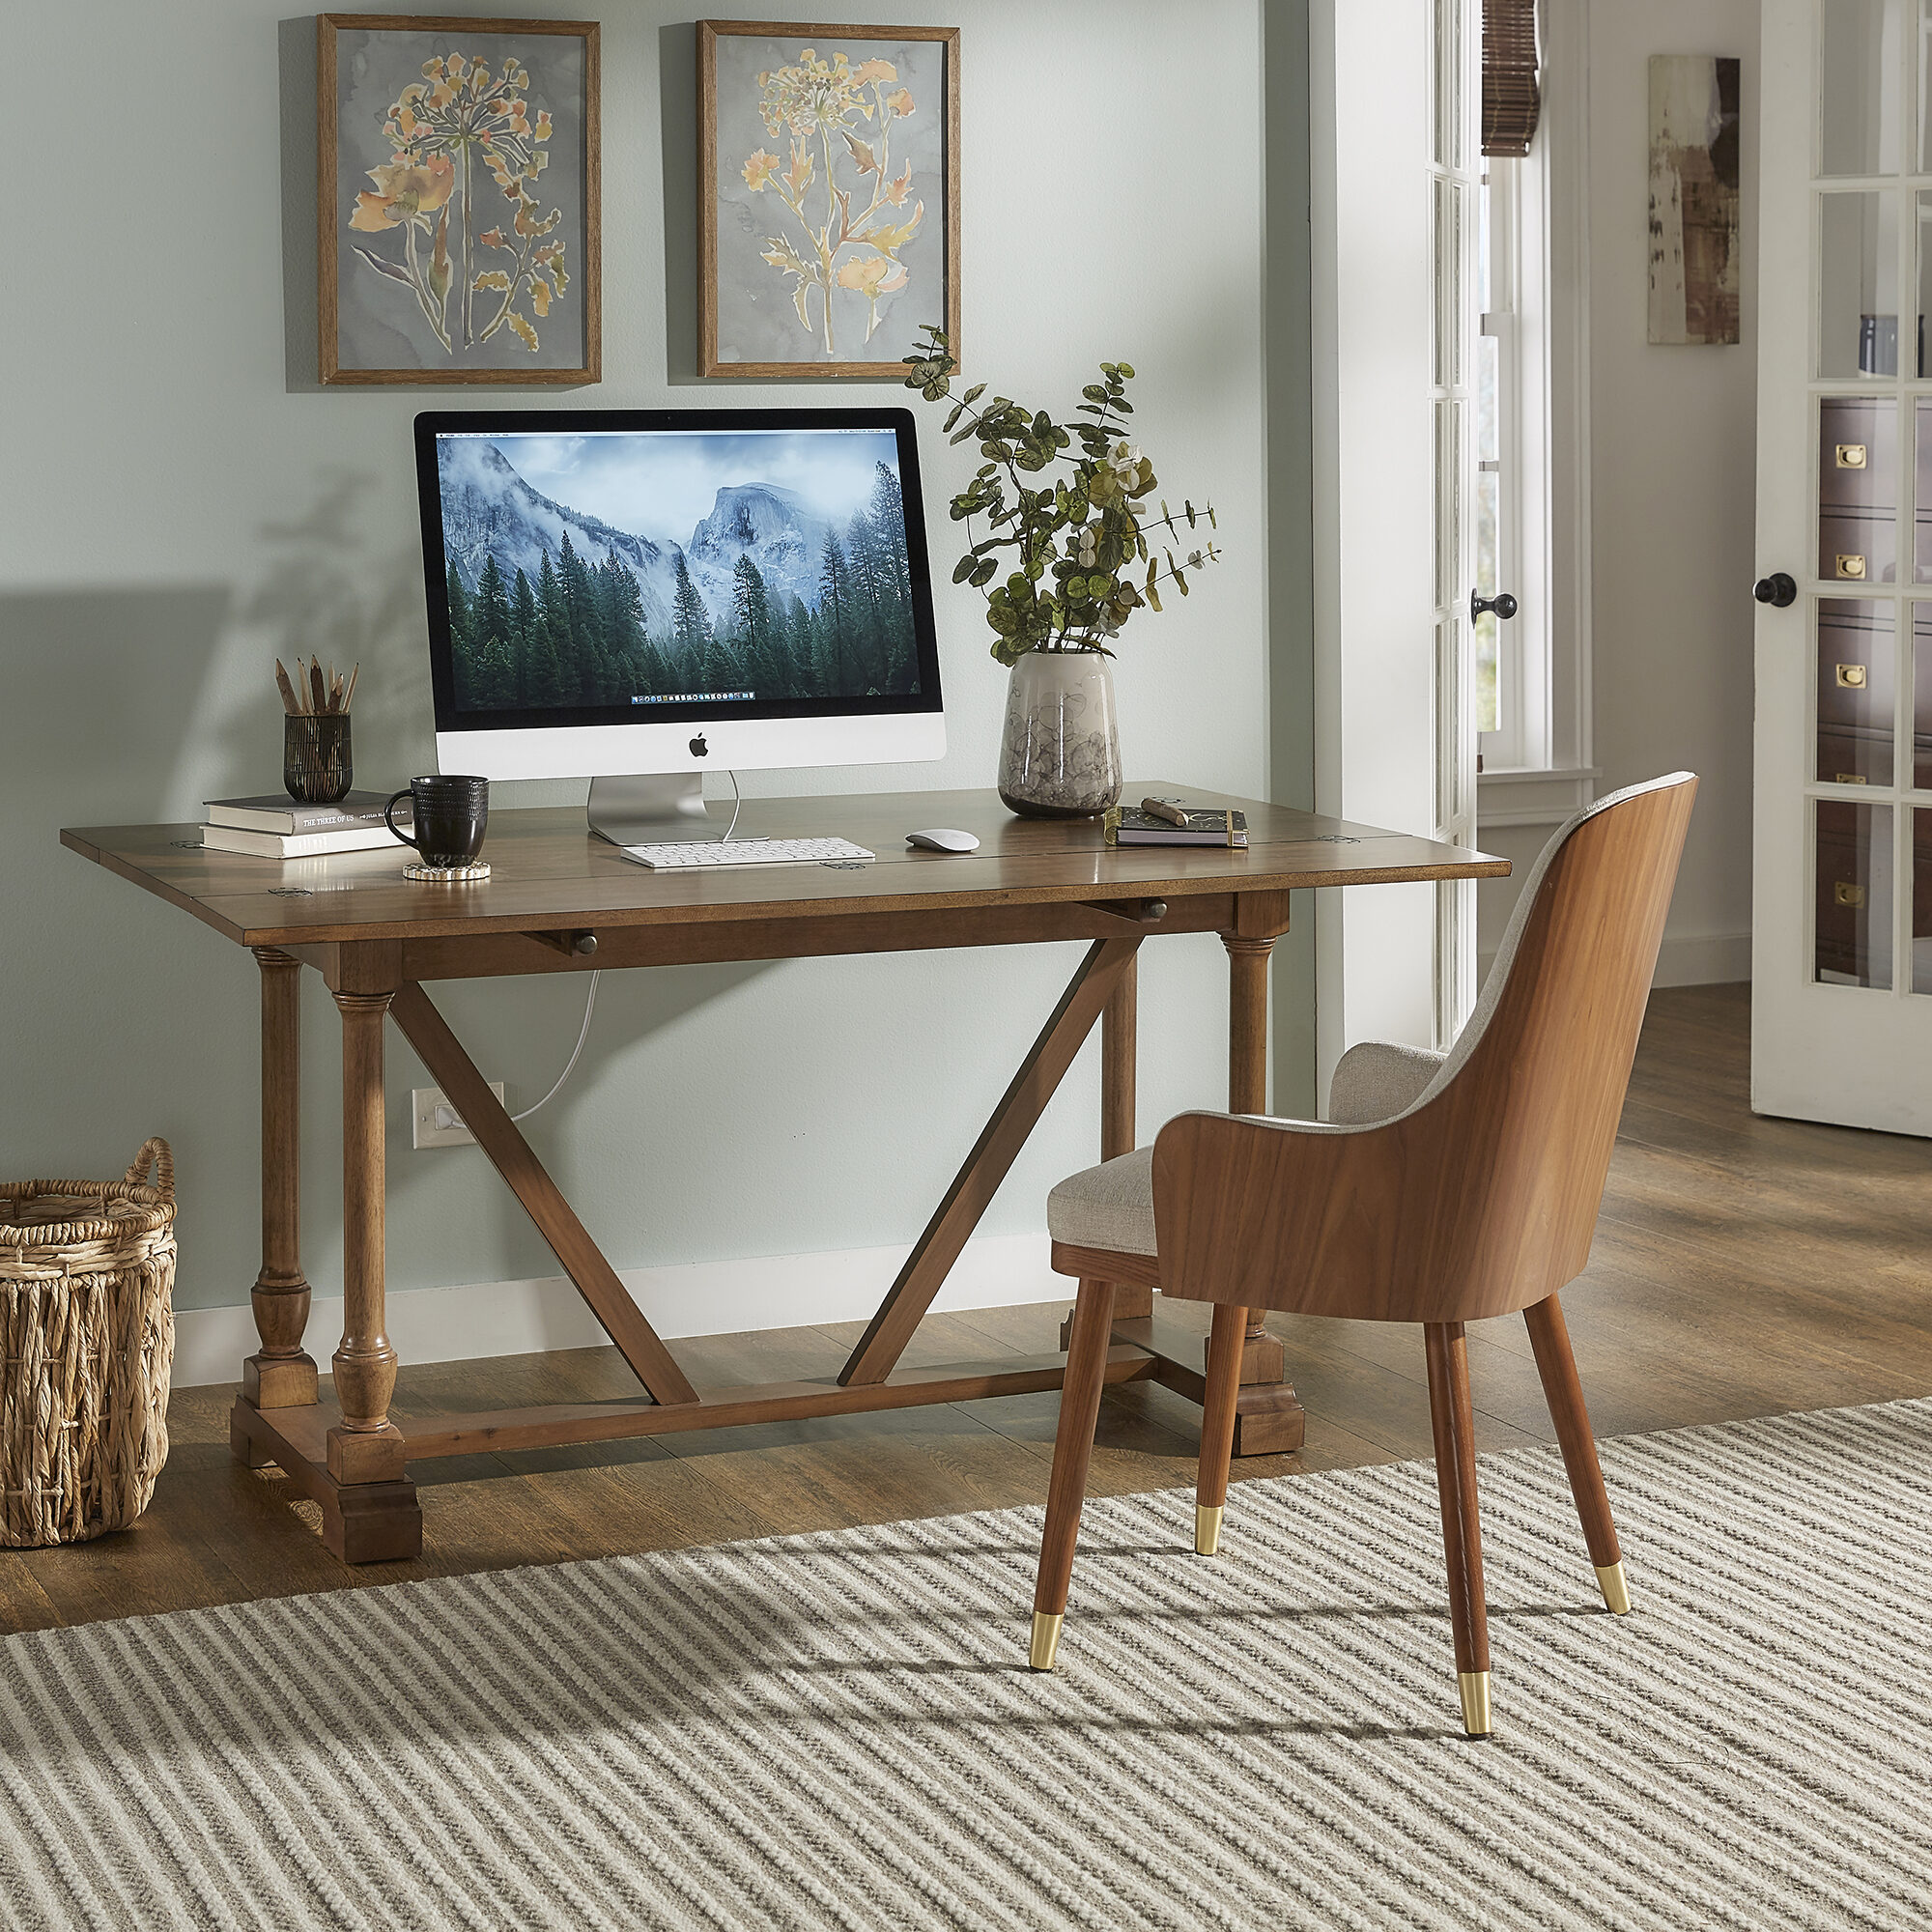 Desks take up a lot of valuable floor space, but convertible tables work well for small spaces. Our Edmaire Convertible Dining Table and Office Desk by iNSPIRE Q Classic has a drop leaf design so you can fold it up and push it against the wall with enough room to work as a desk. If you need more space or are working with friends, you can extend the top!